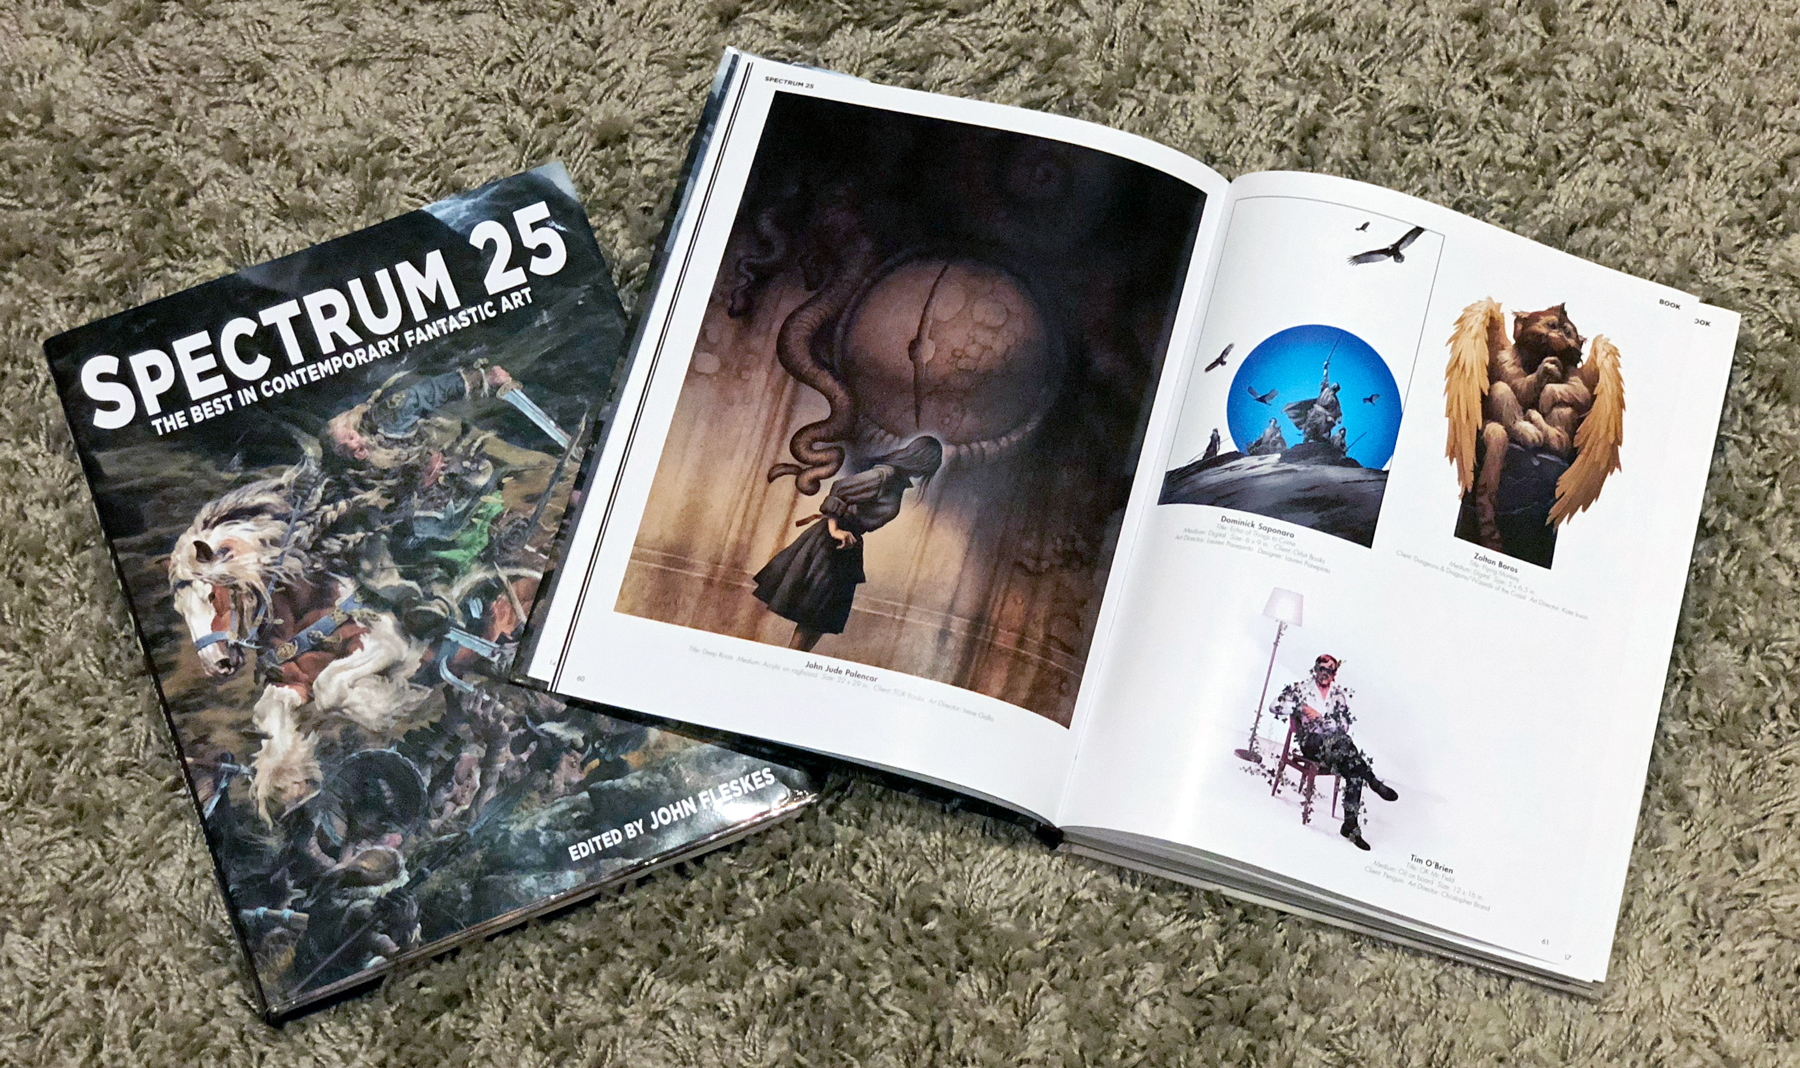 Spectrum 25 Artist Copy Featuring Dominick Saponaro